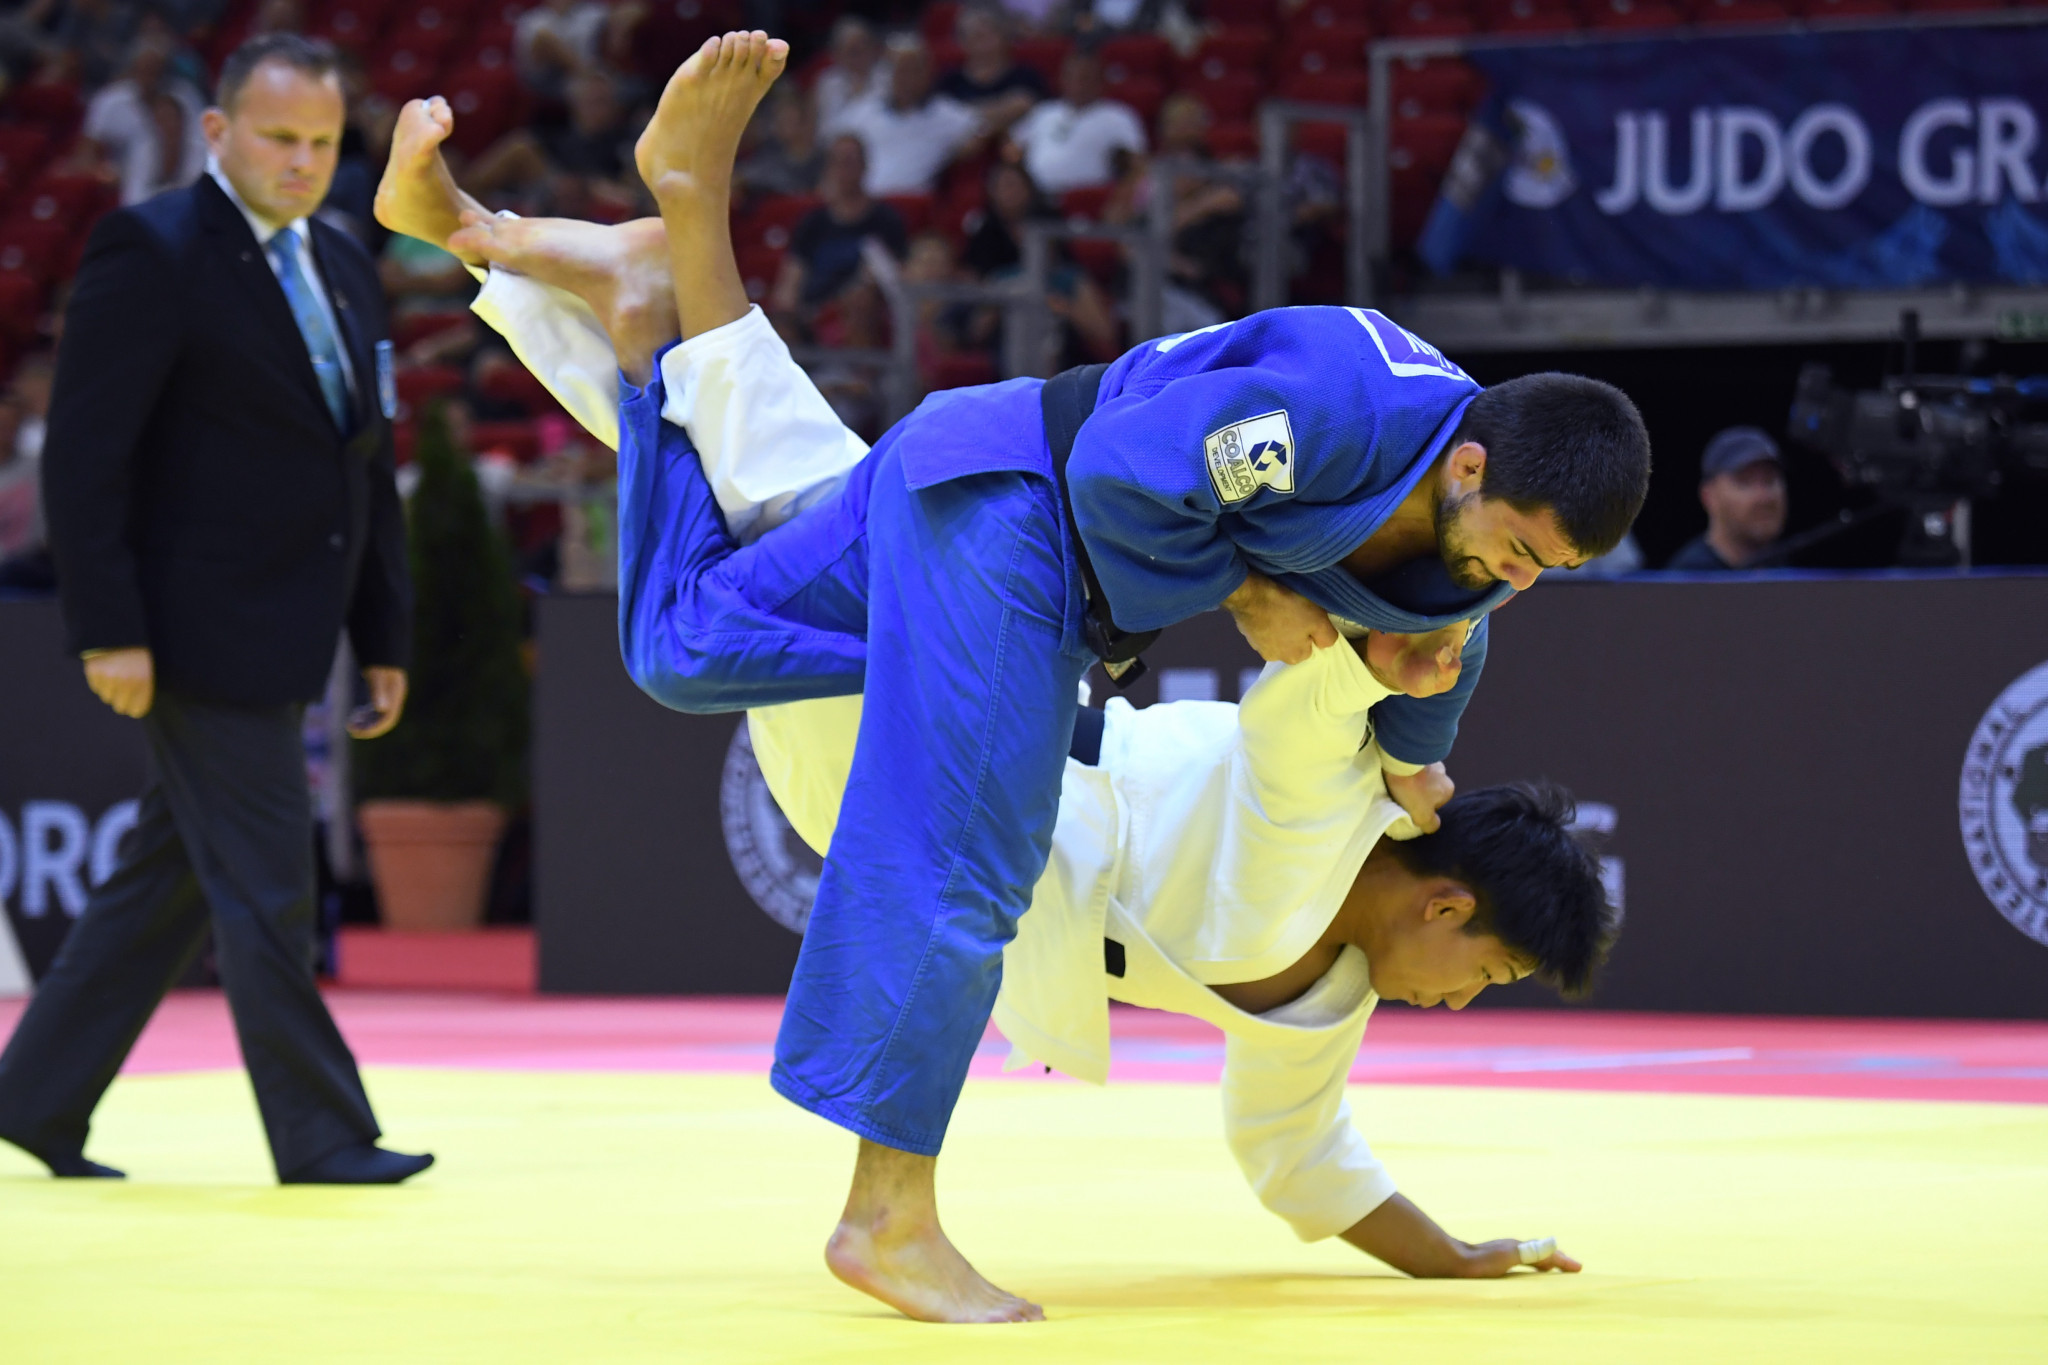 The World Judo Tour is set to return in October, starting with the Budapest Grand Slam ©Getty Images